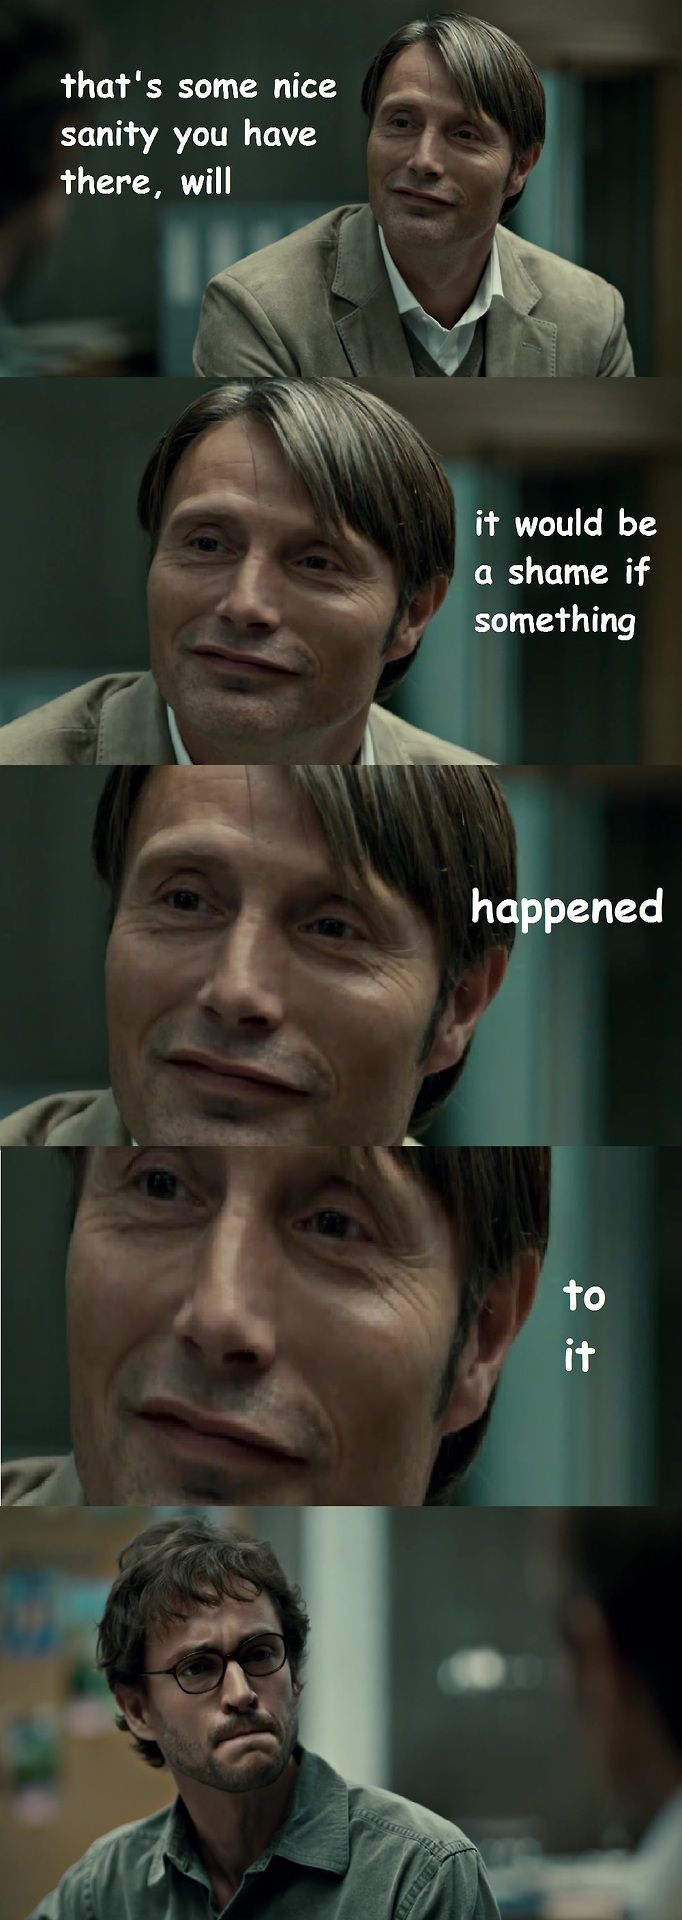 Hannibal  Will ~ Sanity /  This had me crying!  With laughter.  Oh man...there is something wrong with all of us. #Fannibals